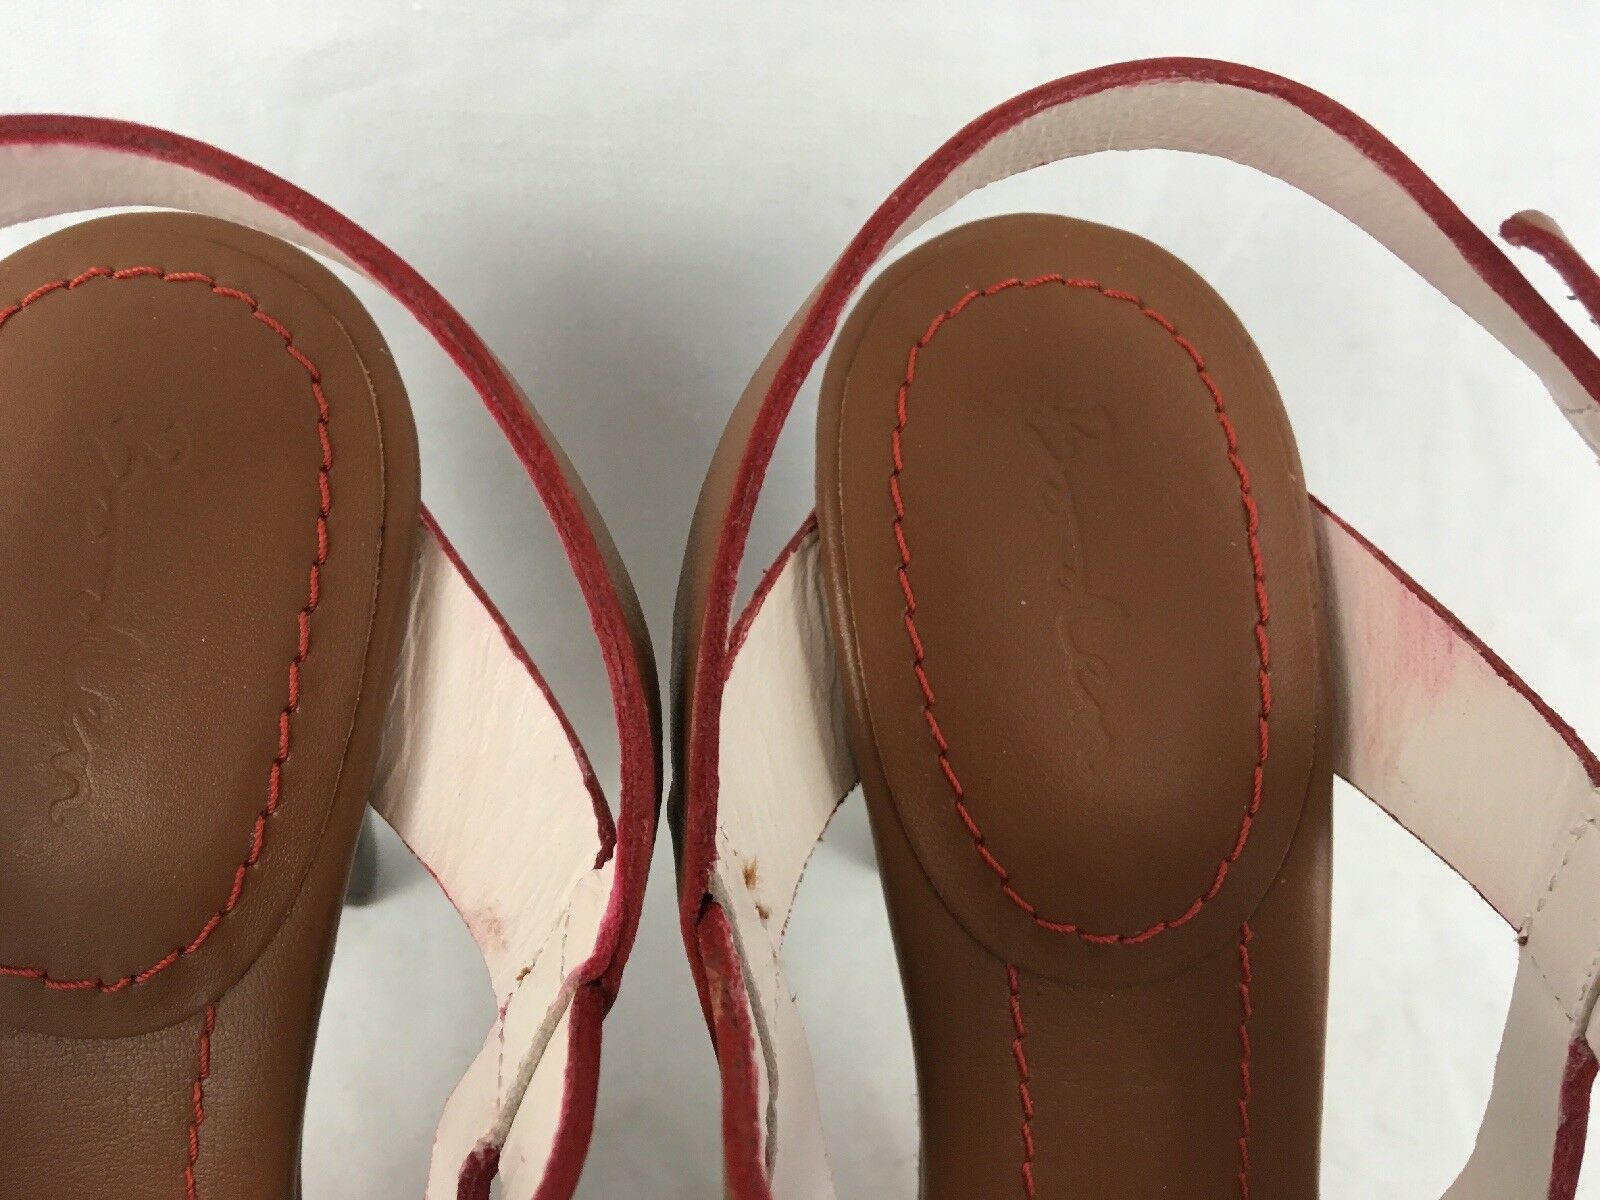 Boden Boden Boden Sandal donna 39 Leather Strappy Tan Marroneeee NEW 4  Heel  8.5 a617f9